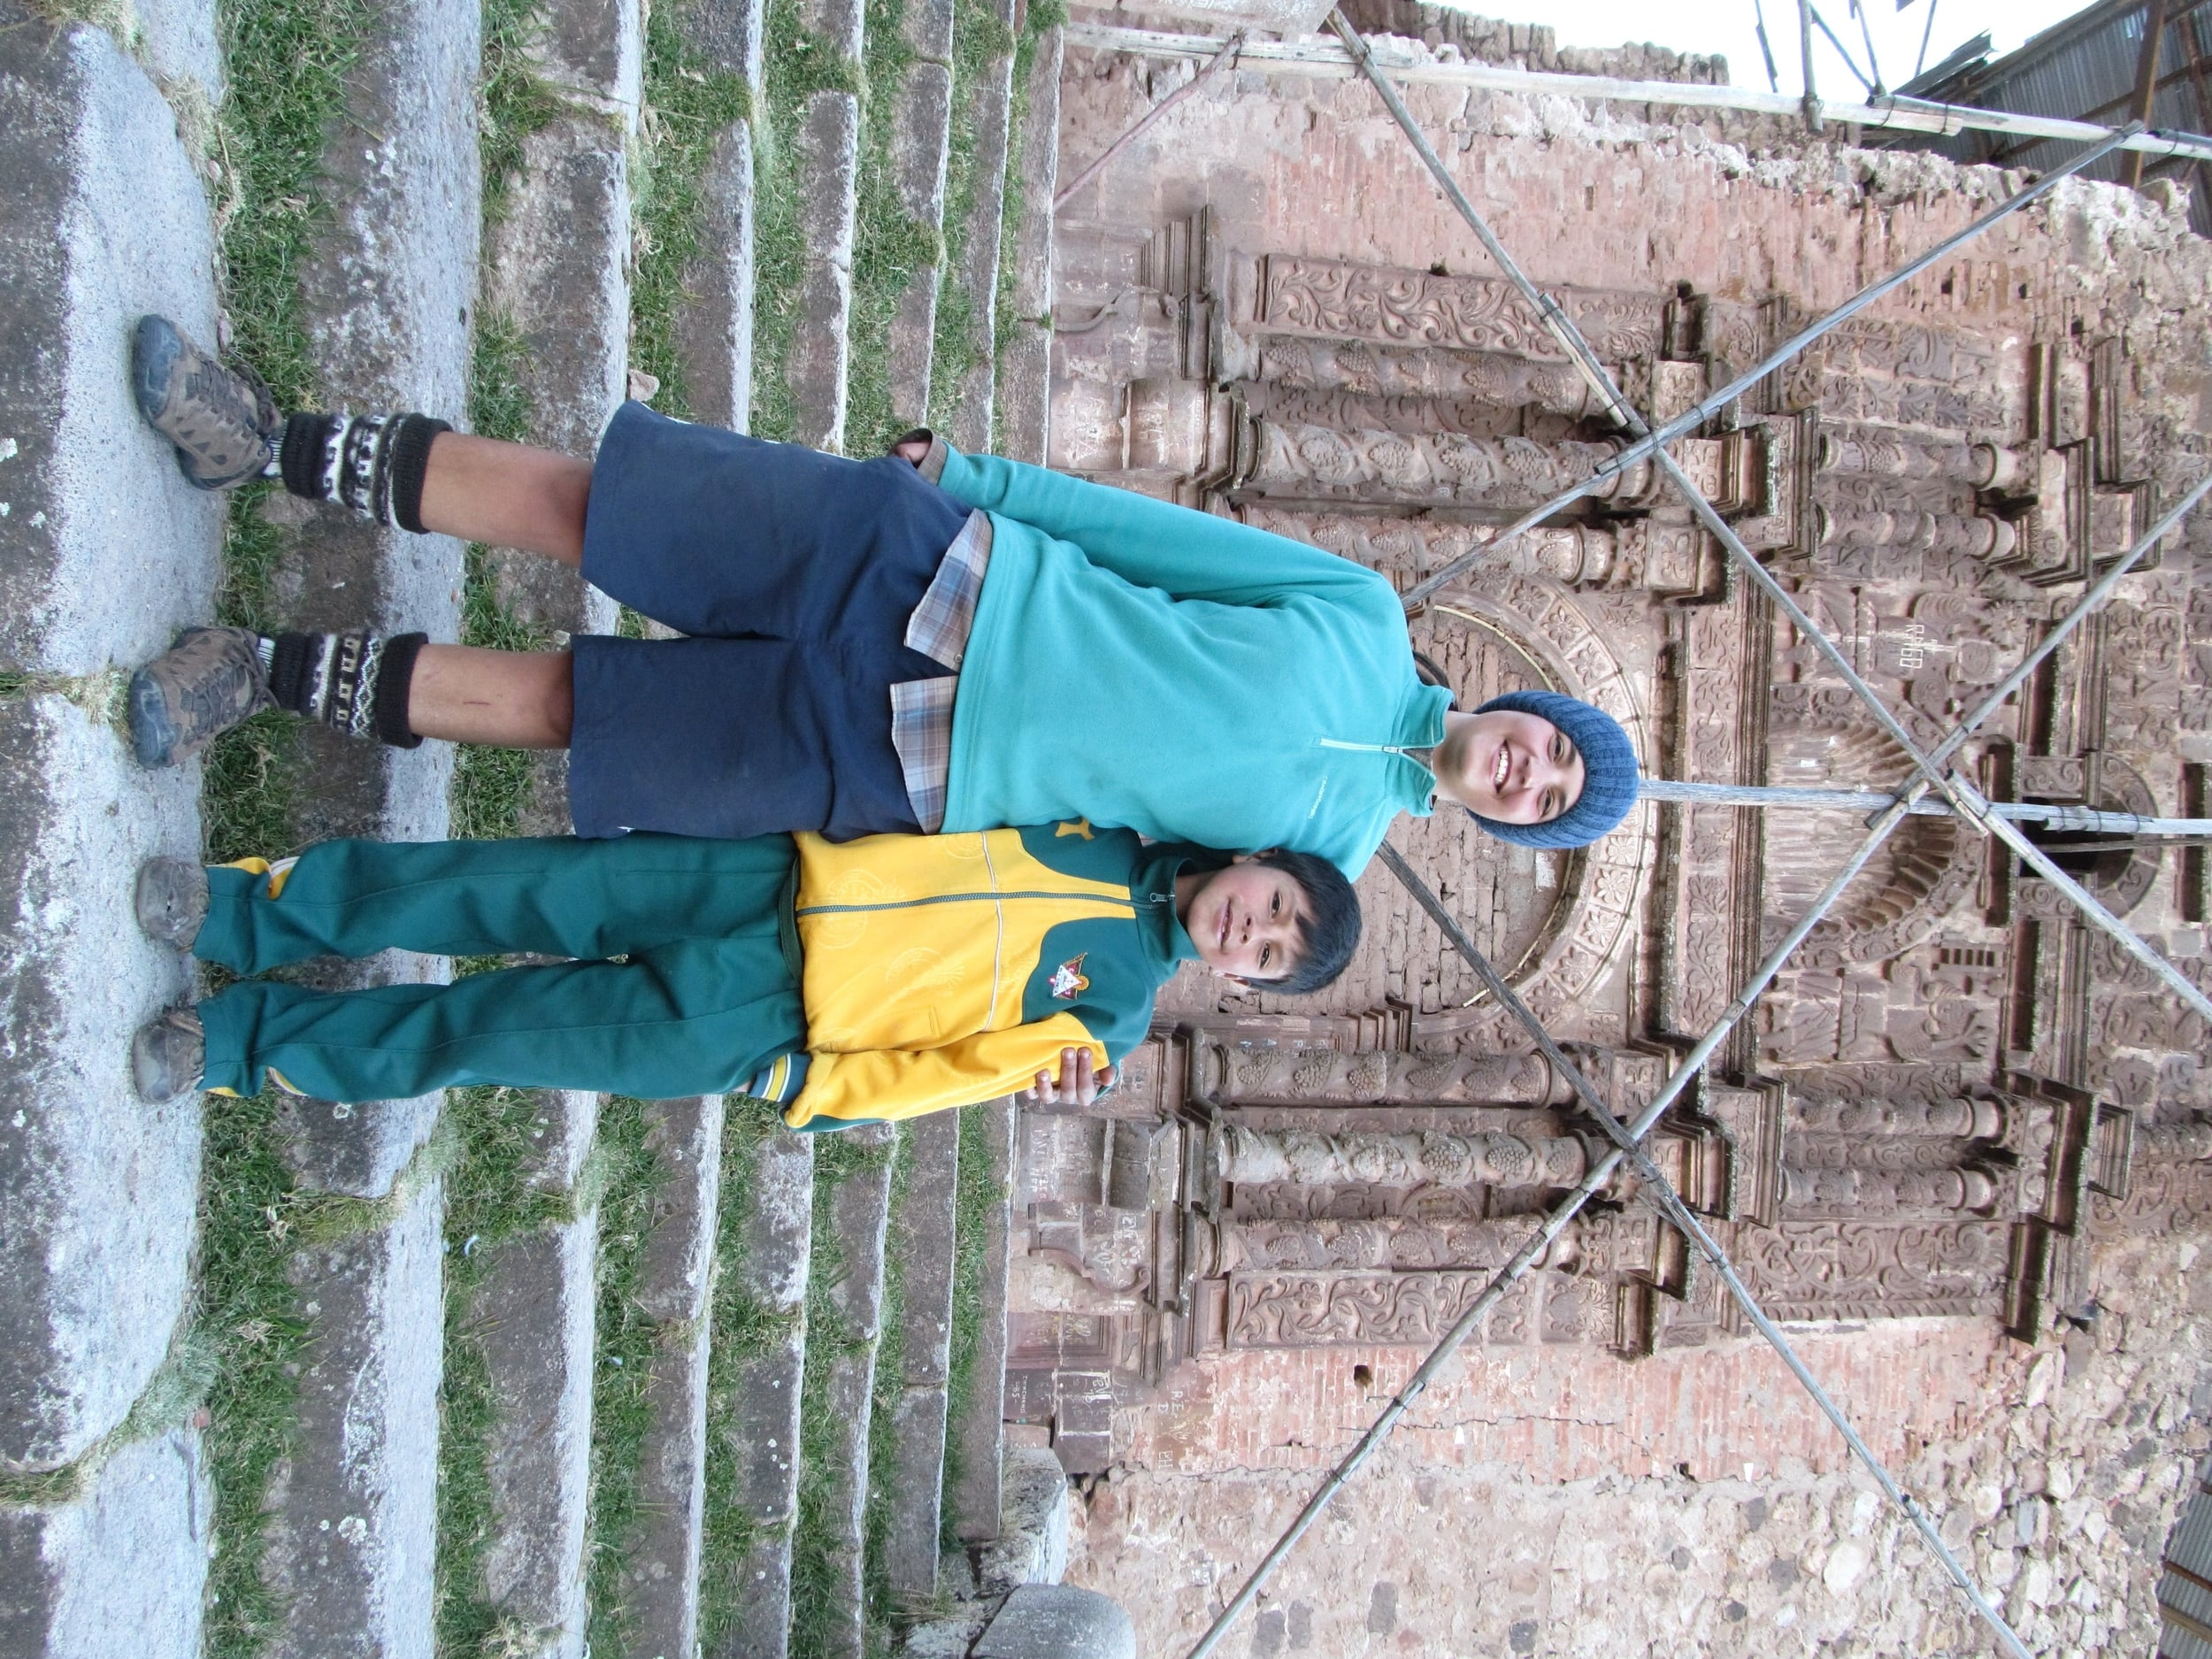 Nia and Oriel at the fourth church. A bit of a fixer-upper compared to the other three.